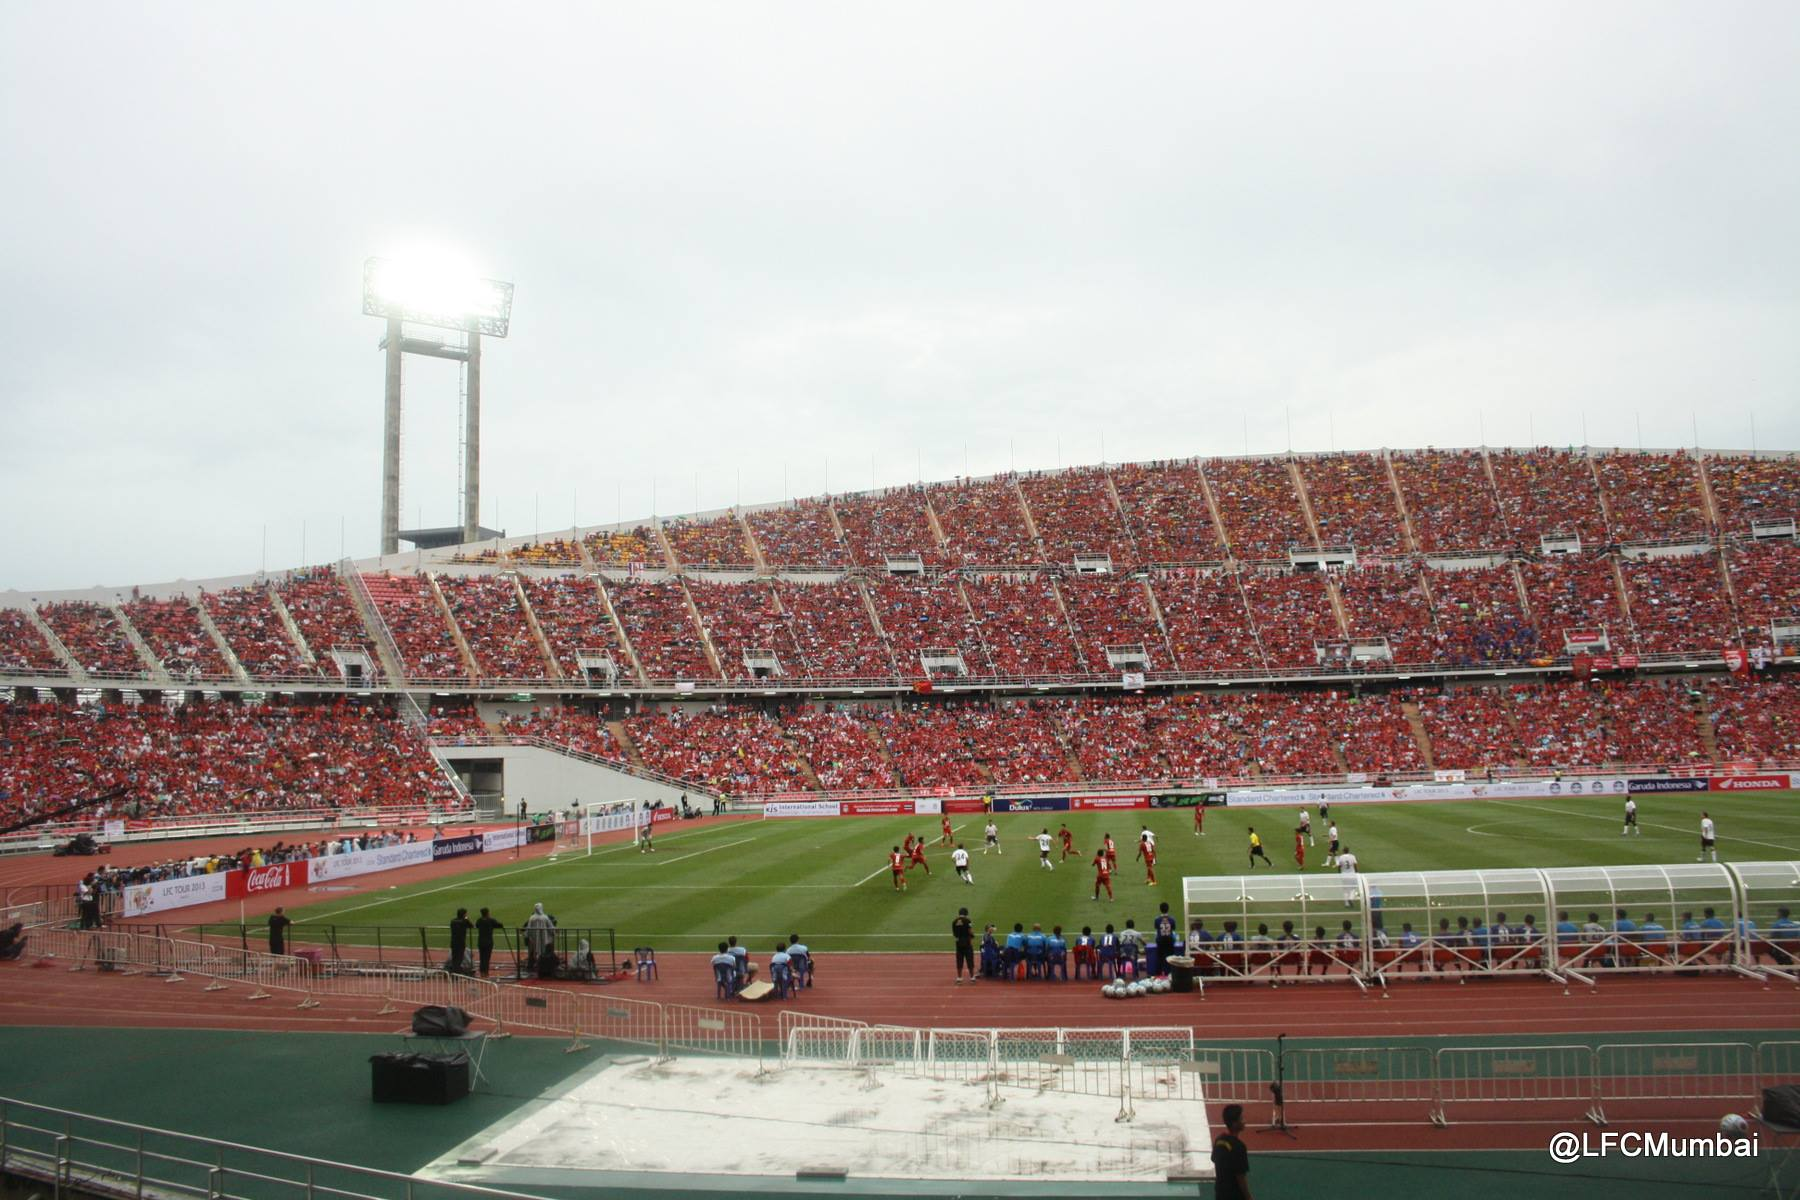 The Rajamangala Stadium